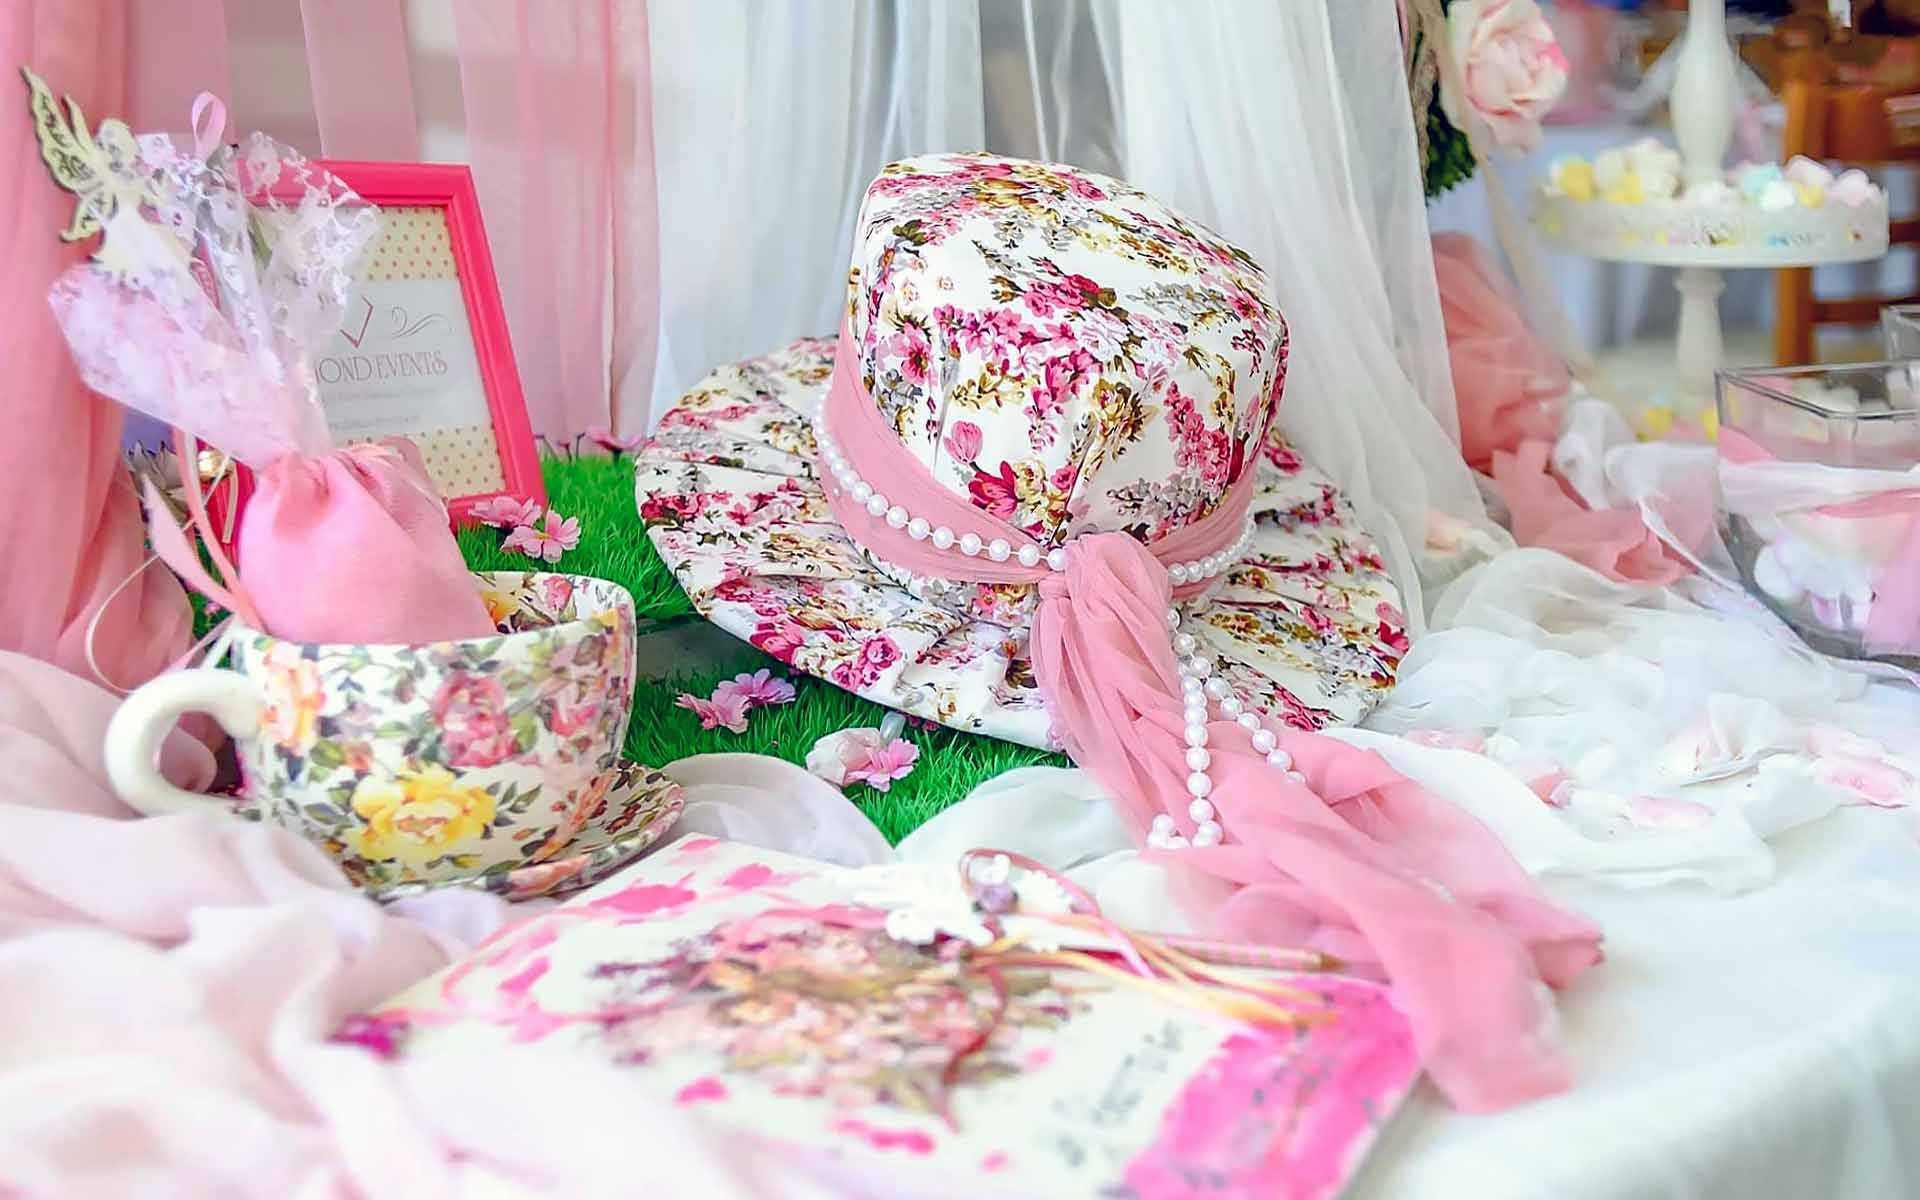 Pretty-In-Pink-And-Floral-Tea-Cups-An-Exquisite-Chic-Flair